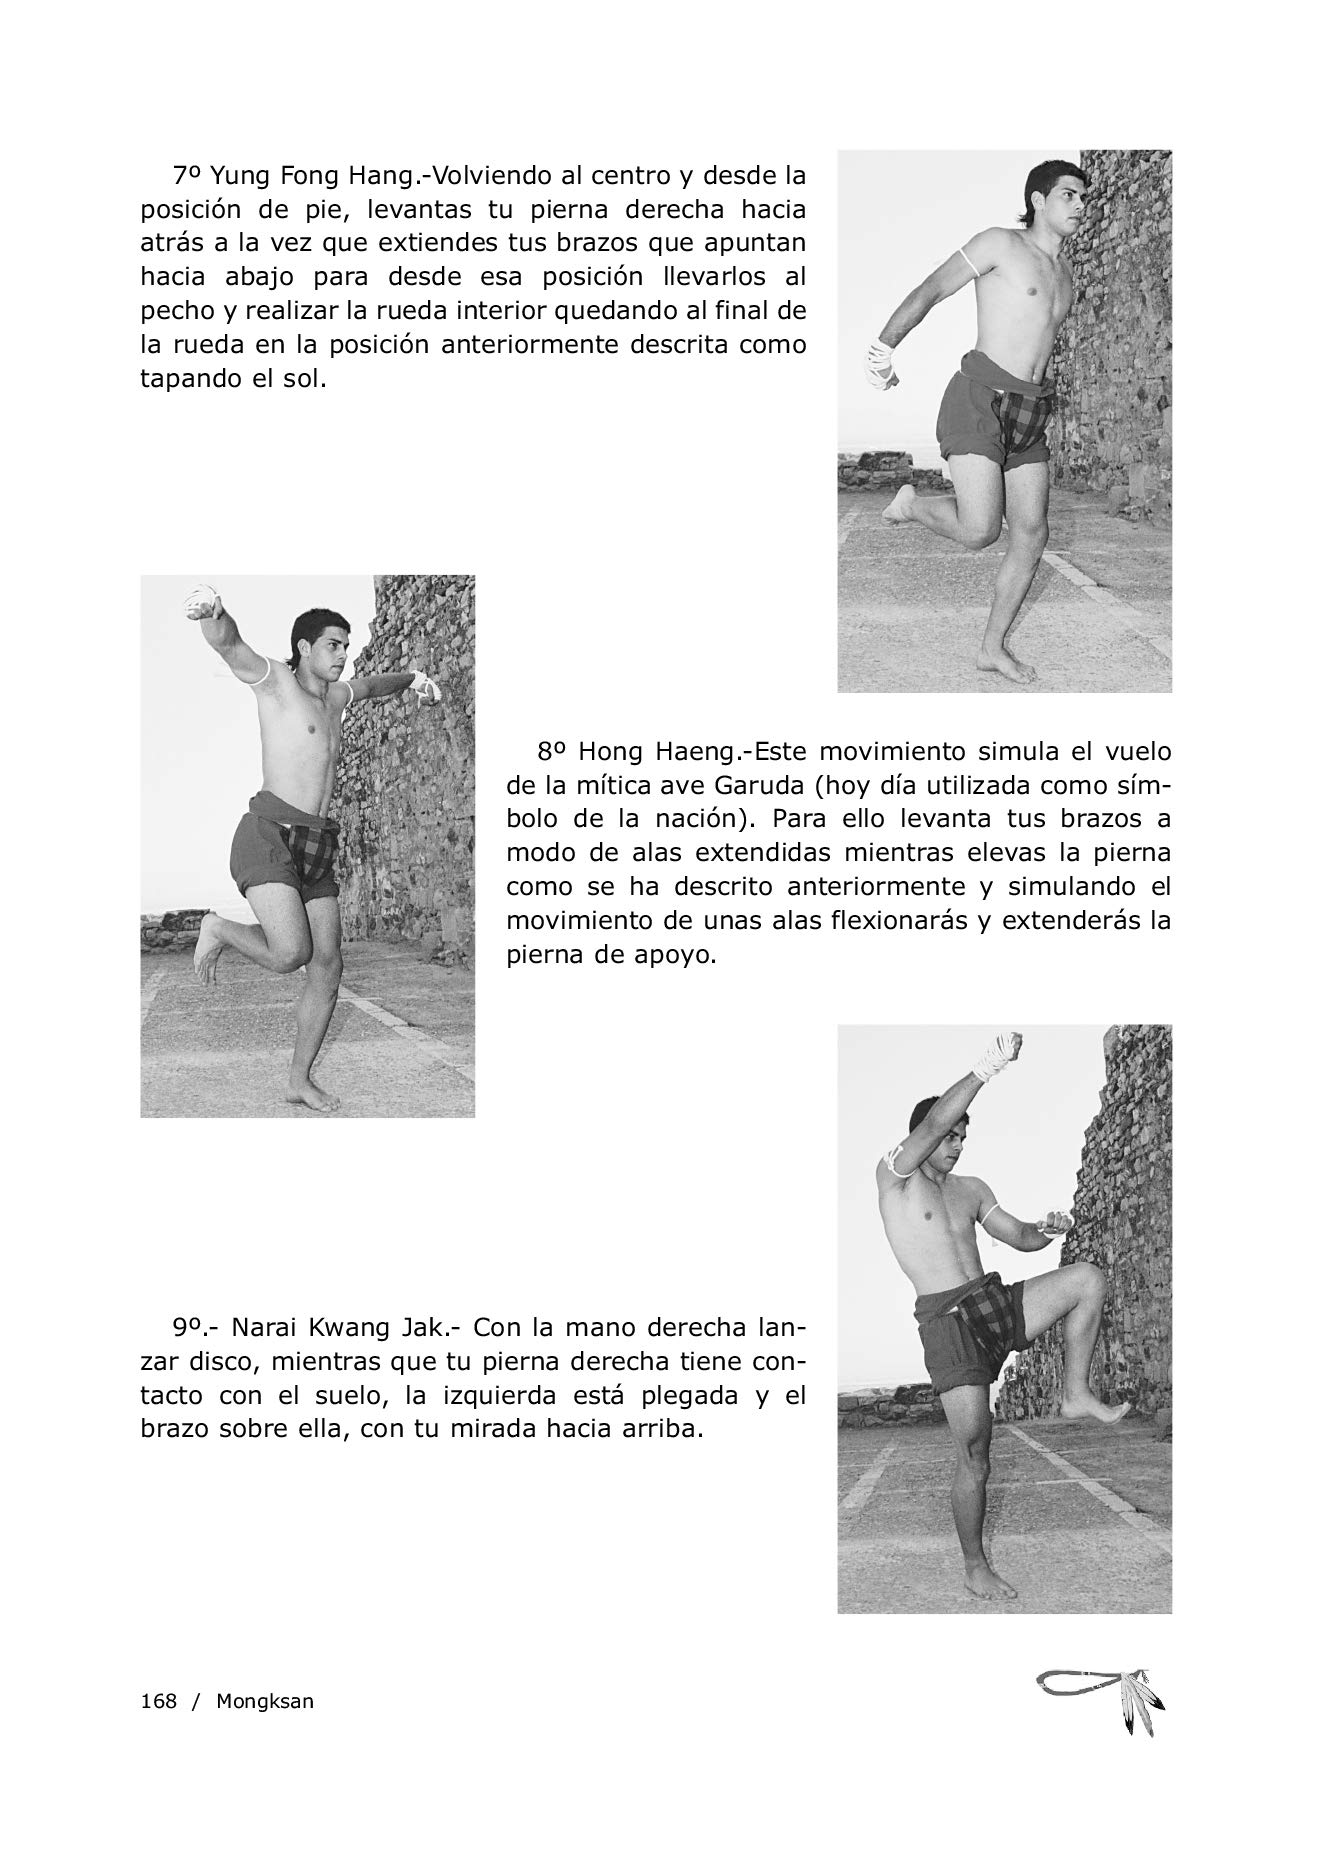 Muay Thai Dee (Spanish Edition): Mongksan: 9788420304403: Amazon.com: Books